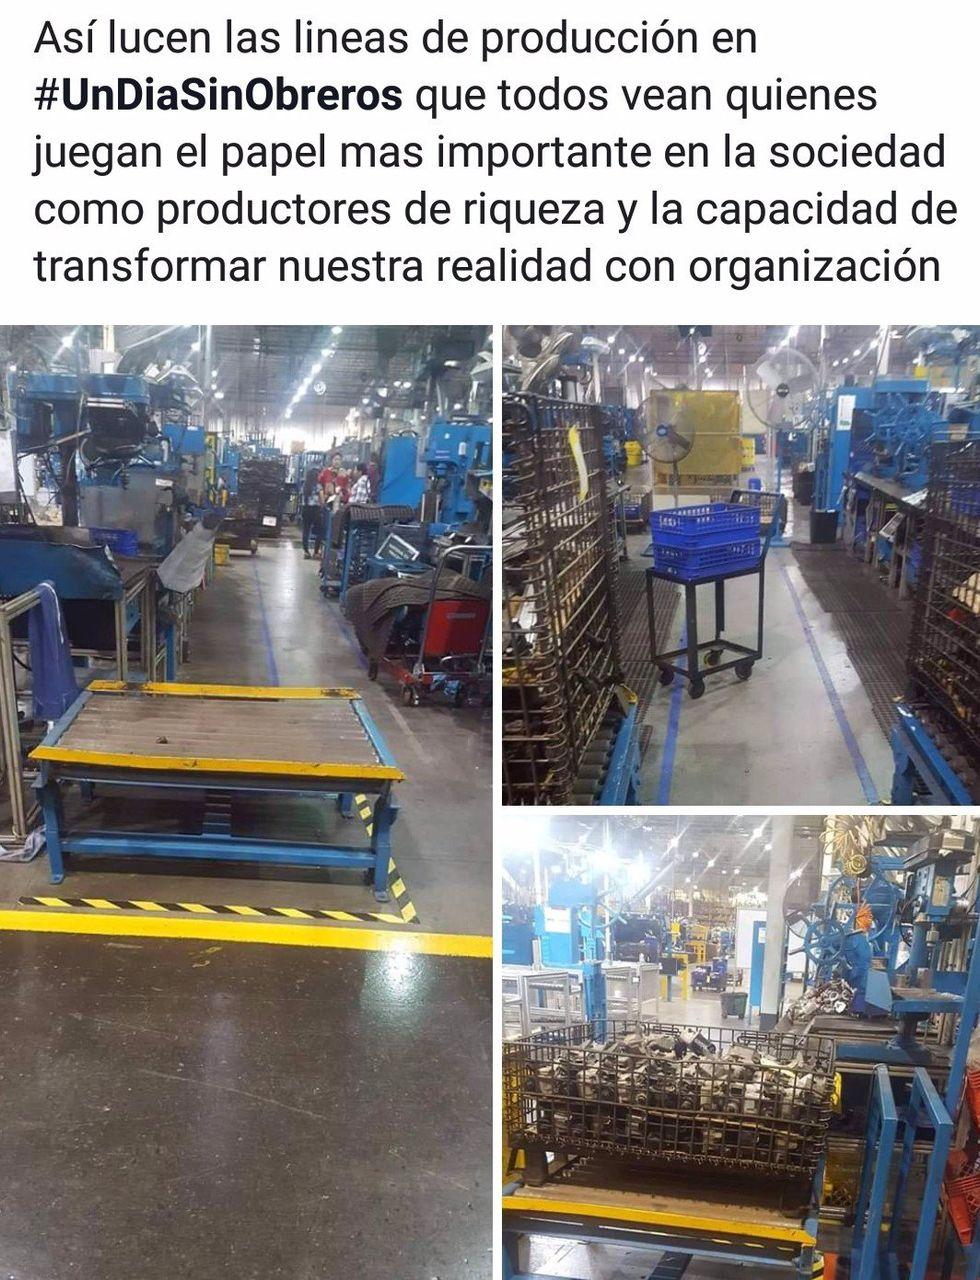 This post by Mexican striking workers reads: Empty production lines for #ADayWithoutWorkers so all can see who plays the most important role in society as producers of wealth and the capacity to transform our situation by organizing